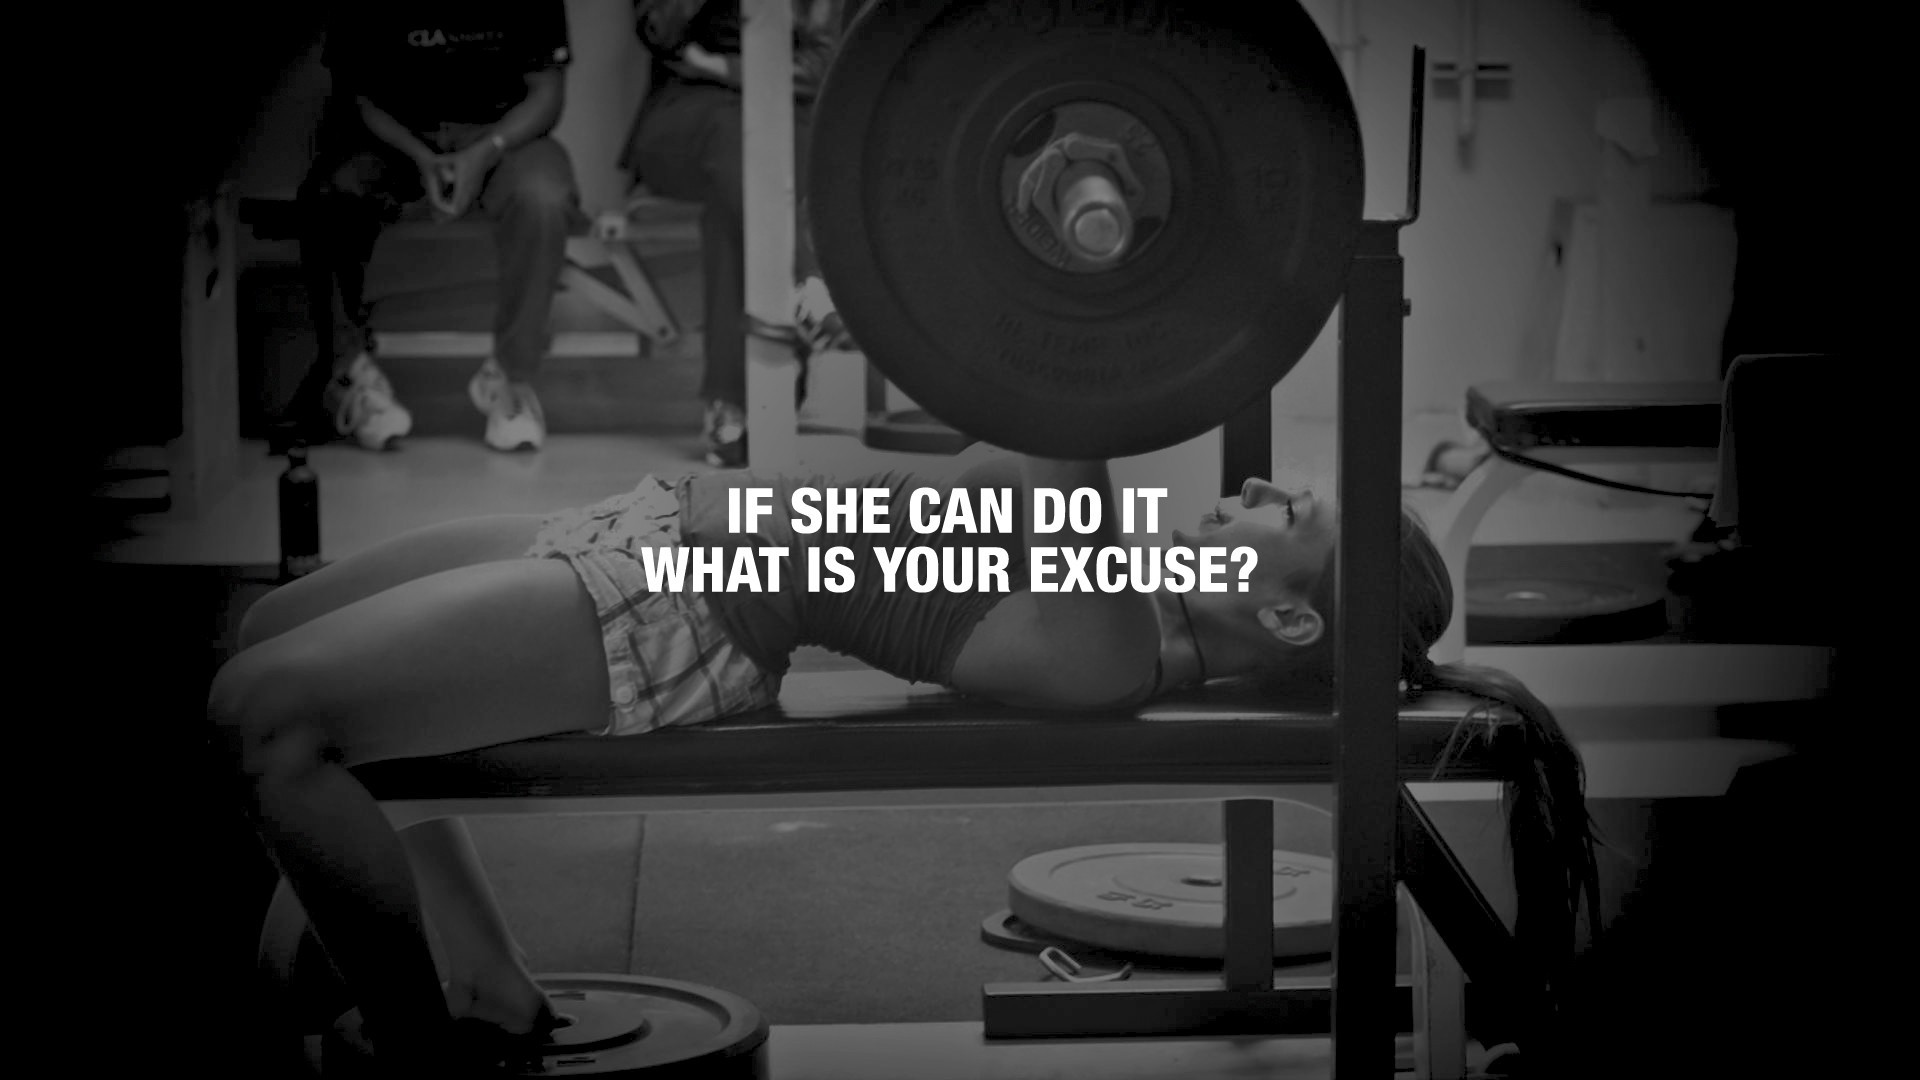 General 1920x1080 exercise quote women gyms ponytail weightlifting